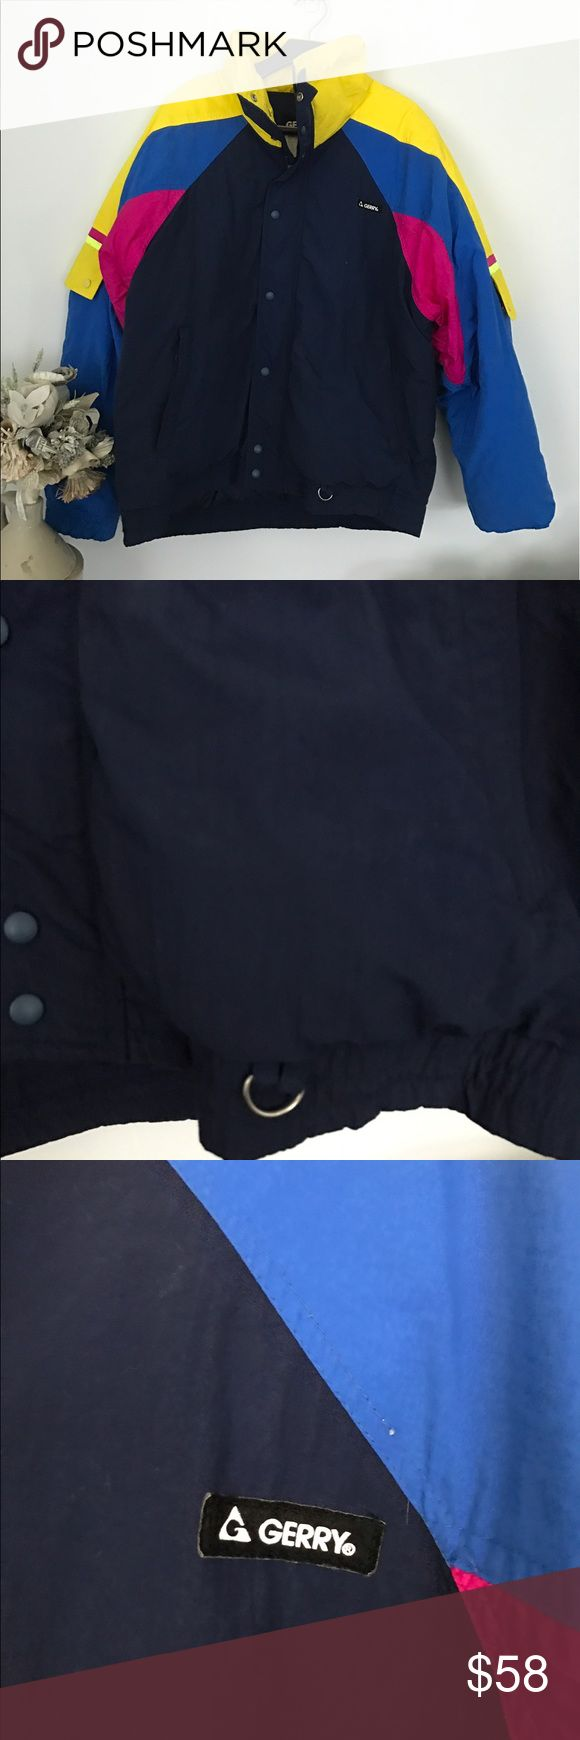 """Gerry Men's jacket puffer coat L """"Holden"""" vintage Two button pockets on sleeve. Pre loved condition. No rips , tears. Smoke and pet free home. Bundle discount 20% Gerry Jackets & Coats Ski & Snowboard"""